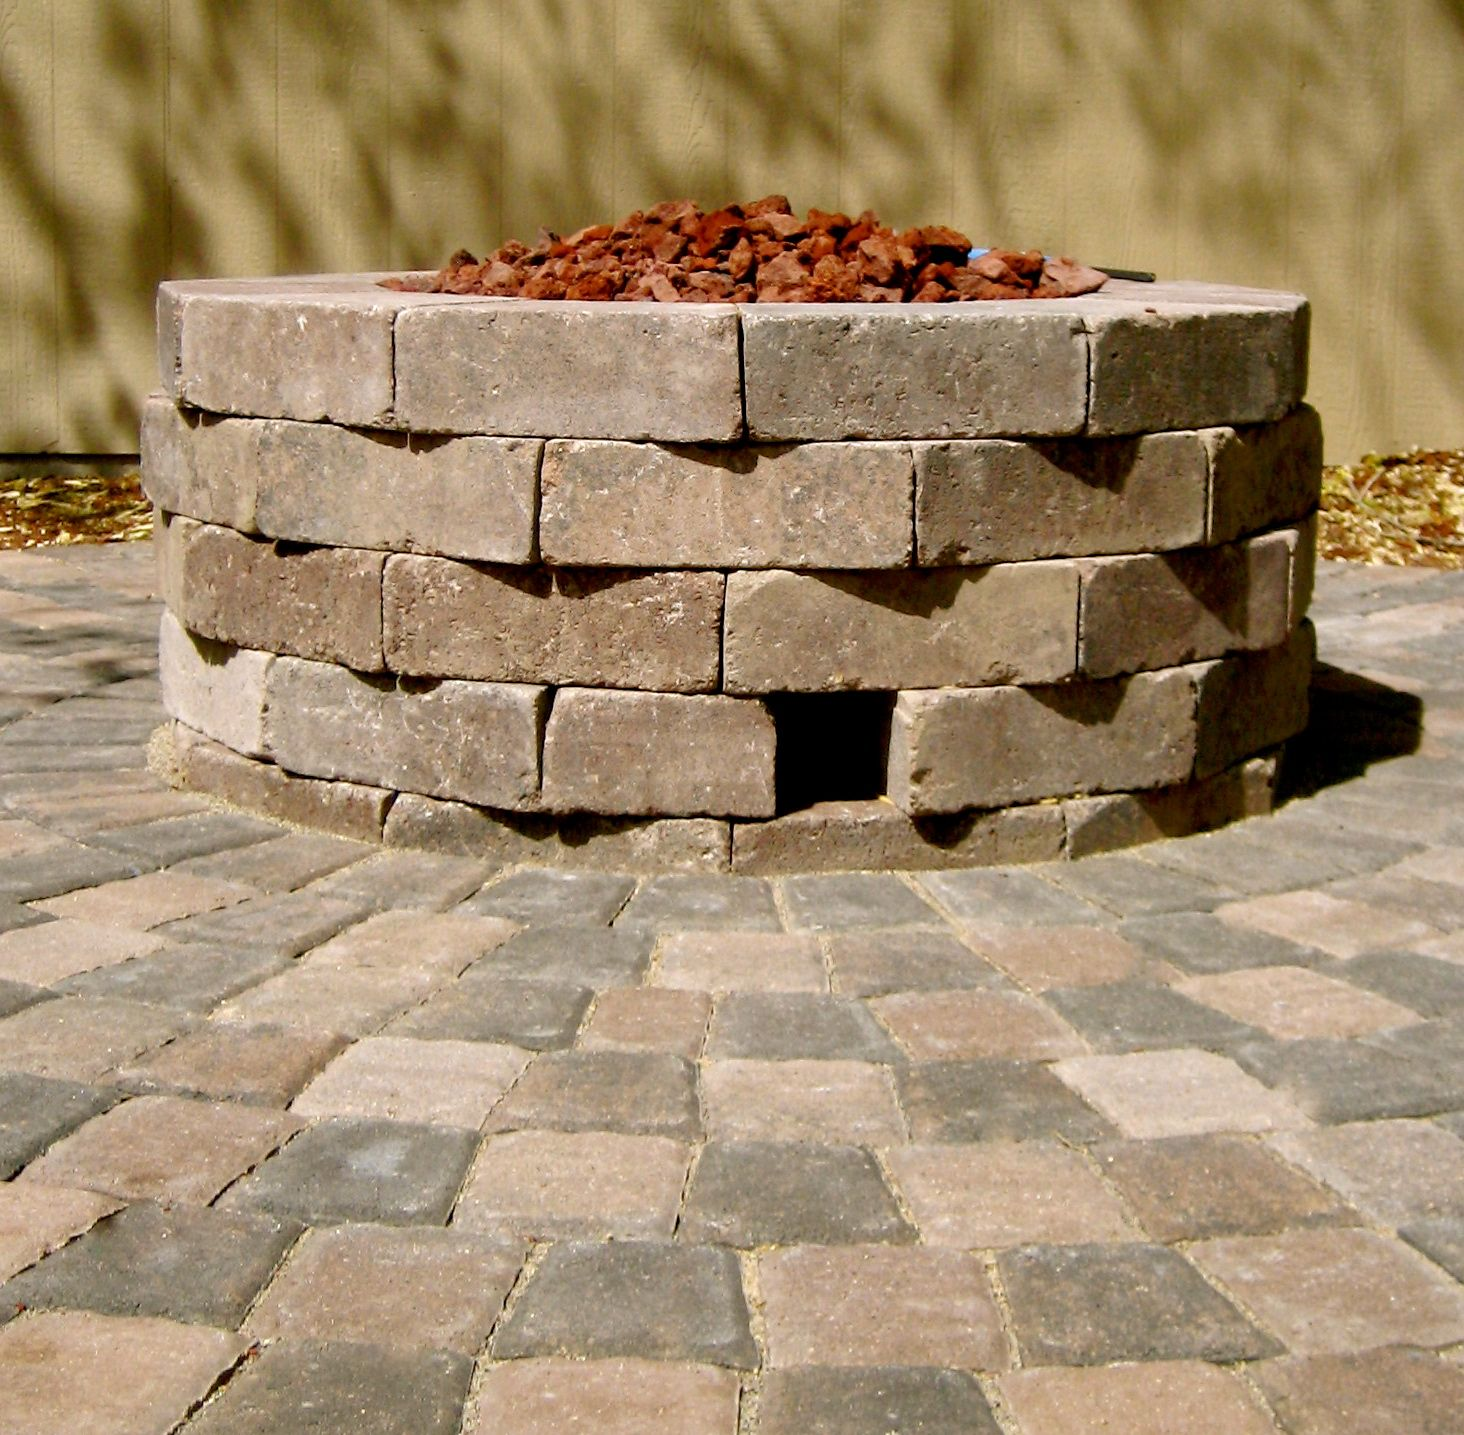 Circular Paver Patio Made With Square Stones Surrounding An Off